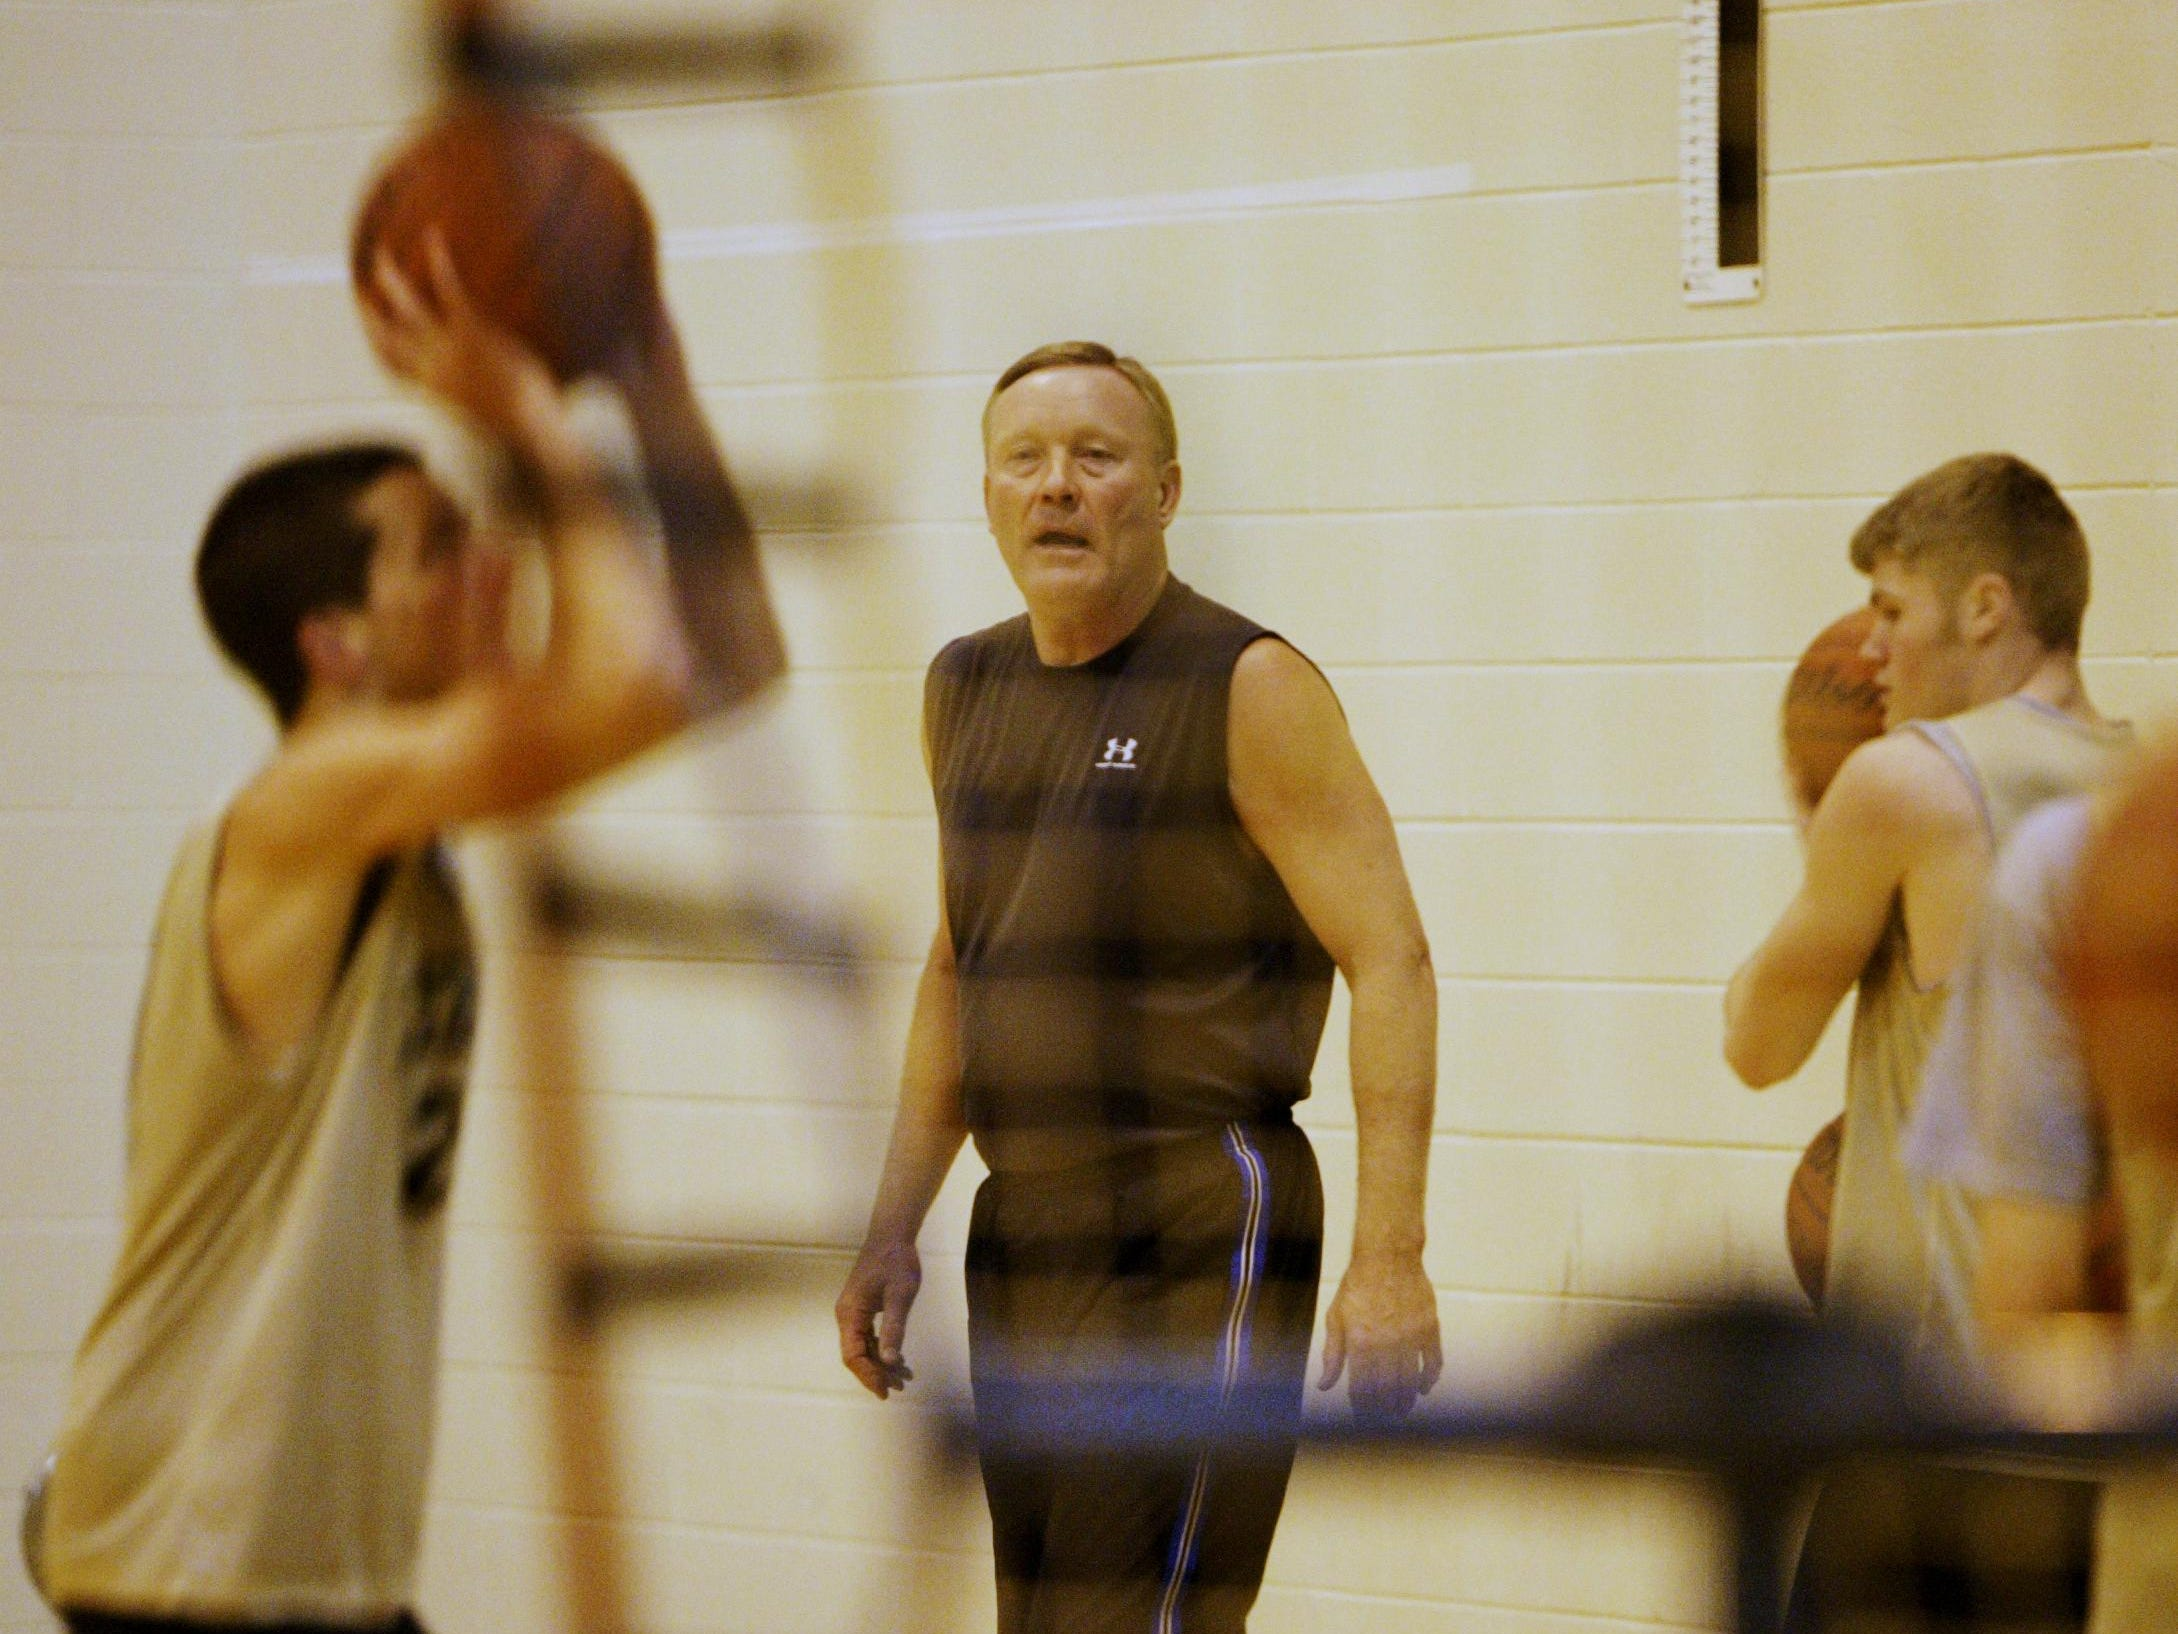 FILE PHOTO FROM 2008 Rick Mount directs Lebanon High School boys basketball players through a shooting drill at the high school Thursday February 16. Mount was one of the greatest shooters in college basketball history at Purdue after winning Mr. Basketball at Lebanon High School. He's been helping the Lebanon girls' basketball team with its shooting for several years, a factor in the team's undefeated/No. 1 ranked season and berth in th e ISHAA regionals. (Joe Vitti/Indianapolis Star)